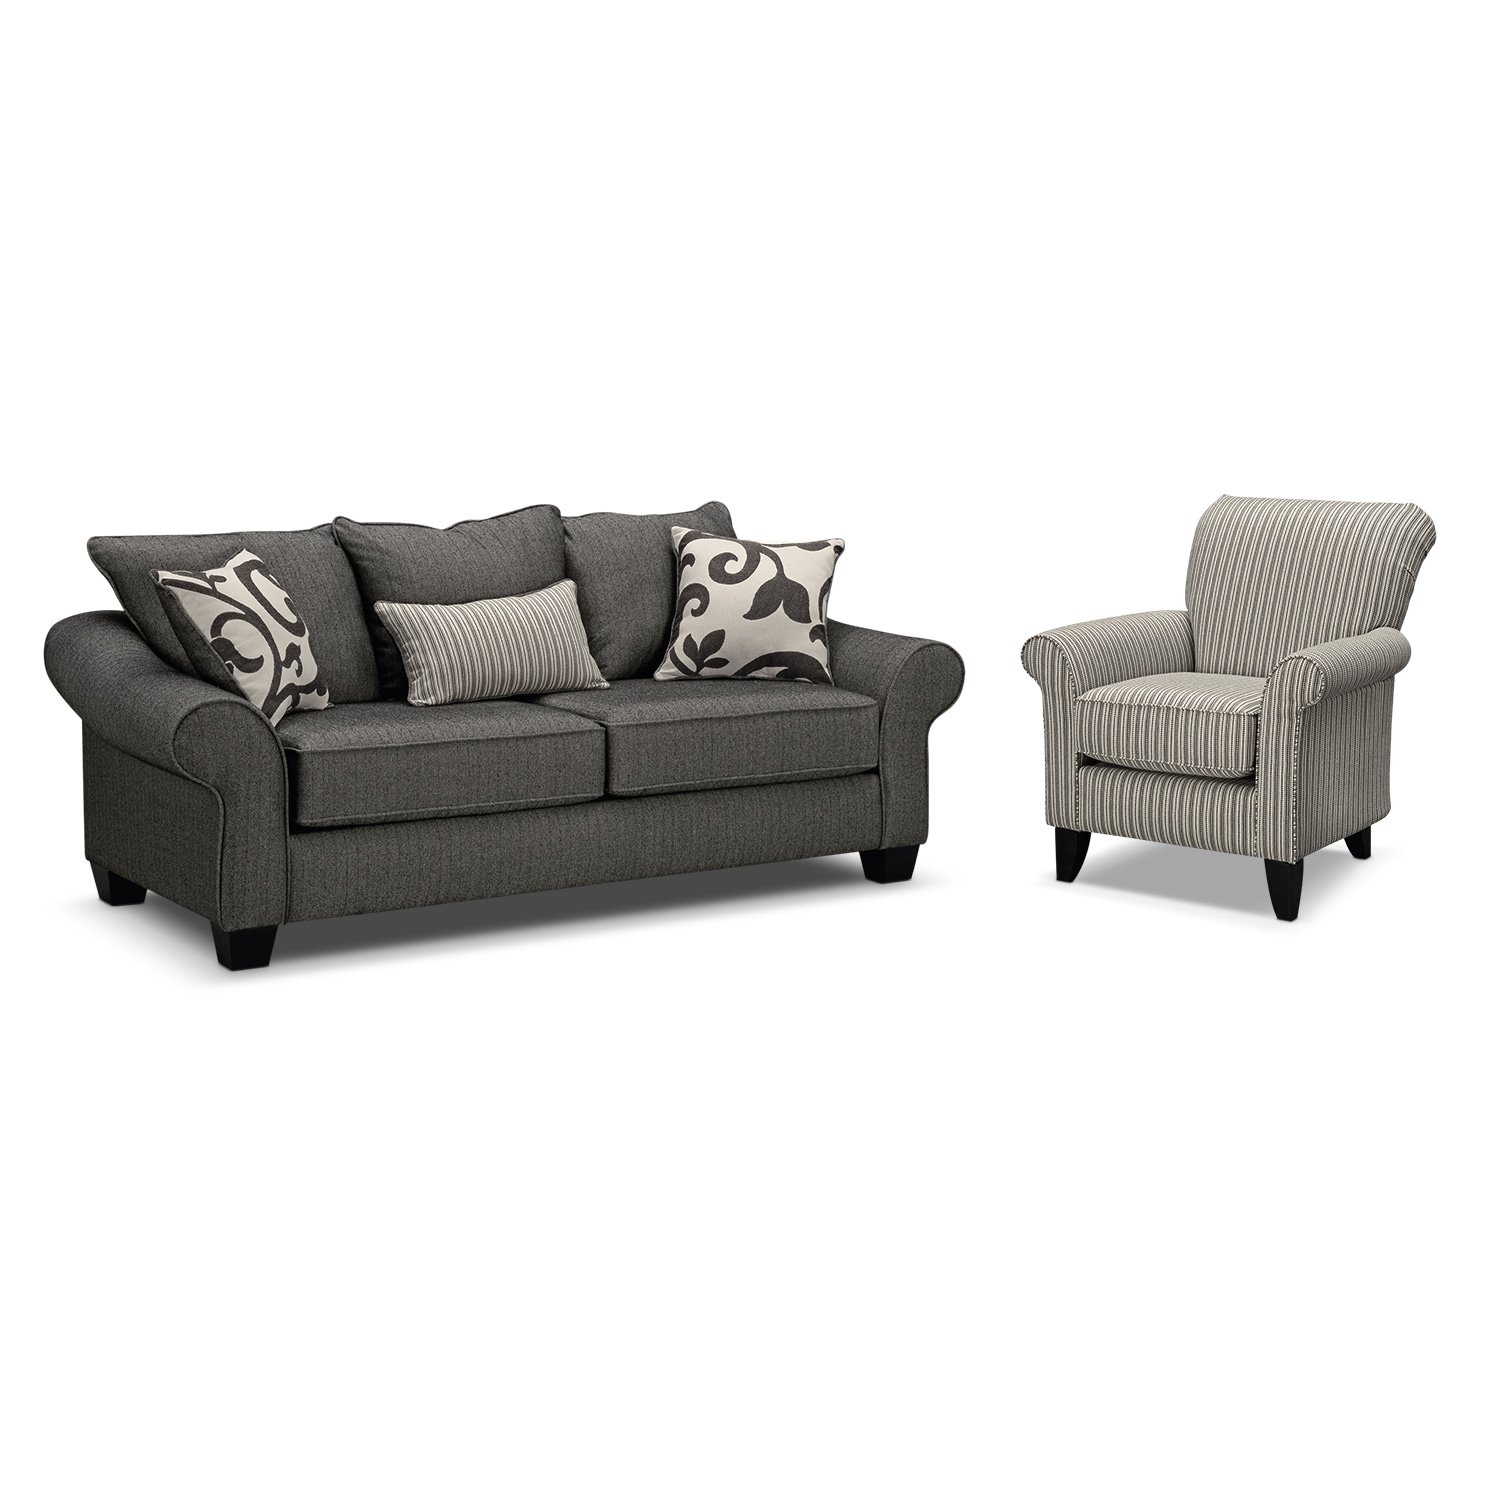 Colette Sofa And Accent Chair Set – Gray | Value City Furniture And With Regard To Sofa And Accent Chair Sets (View 6 of 10)